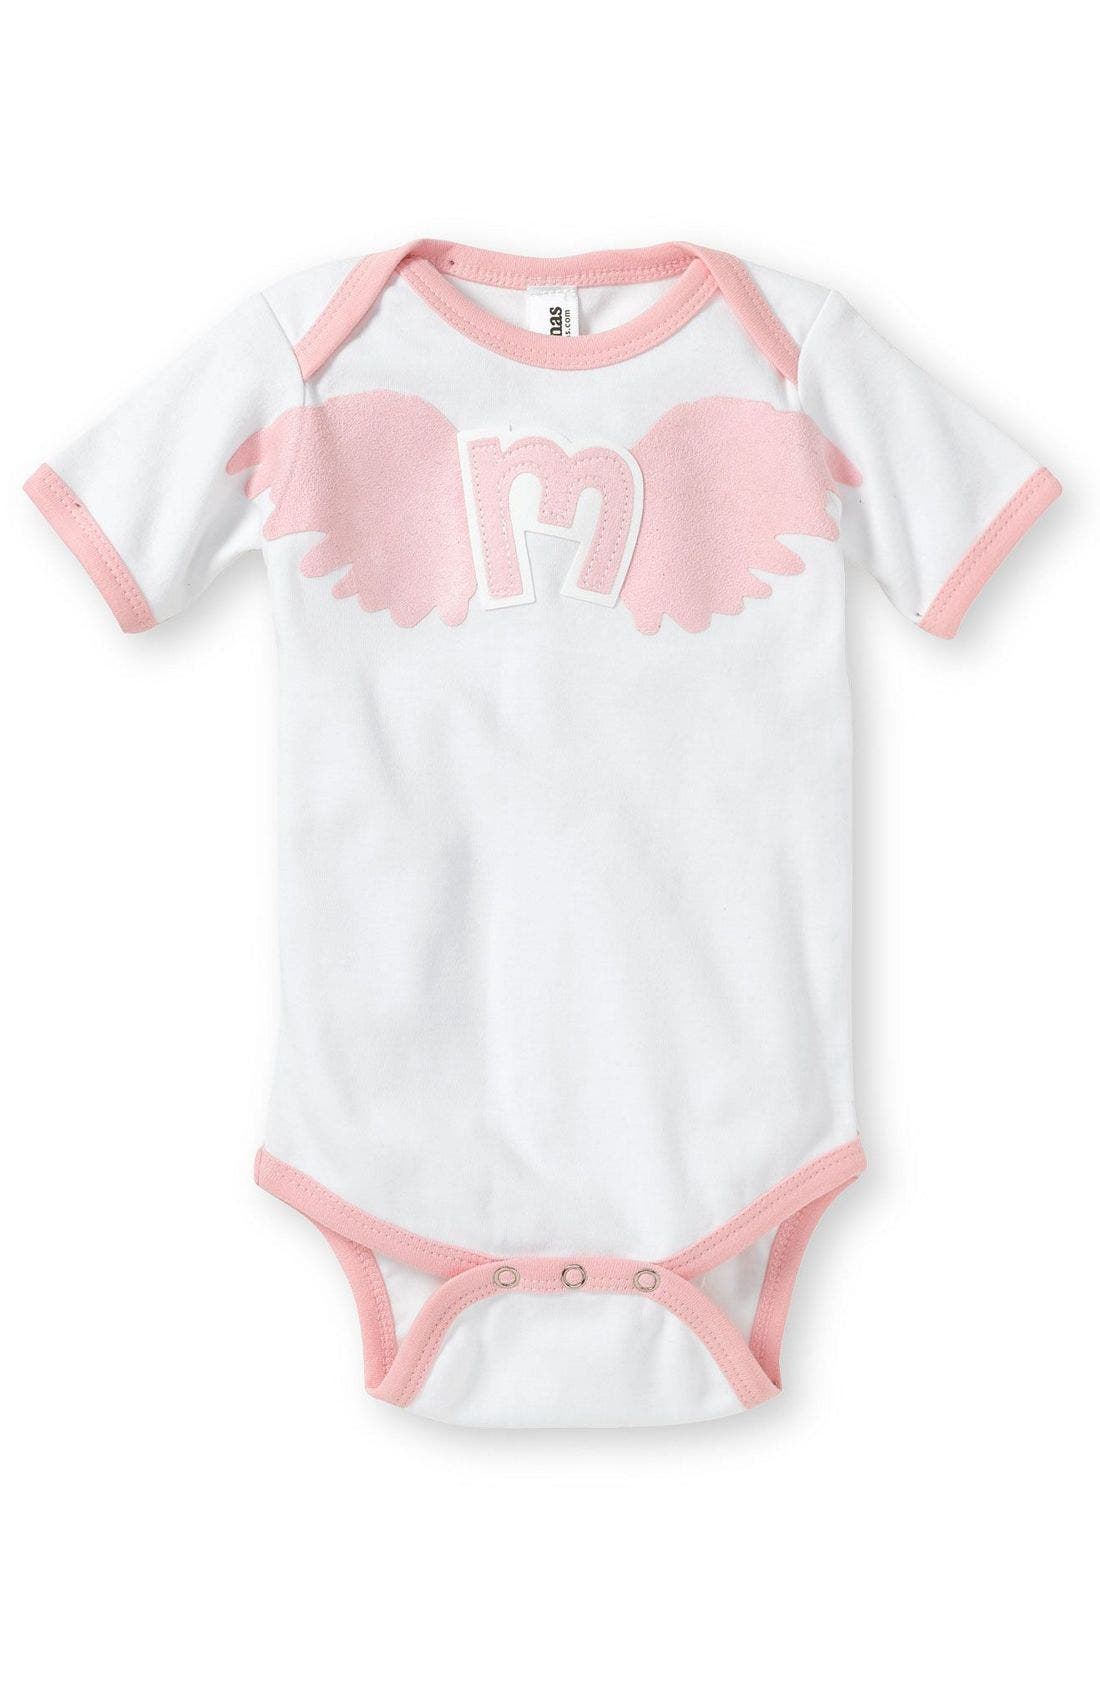 Alternate Image 1 Selected - Two Tinas Icon Bodysuit (Infant)